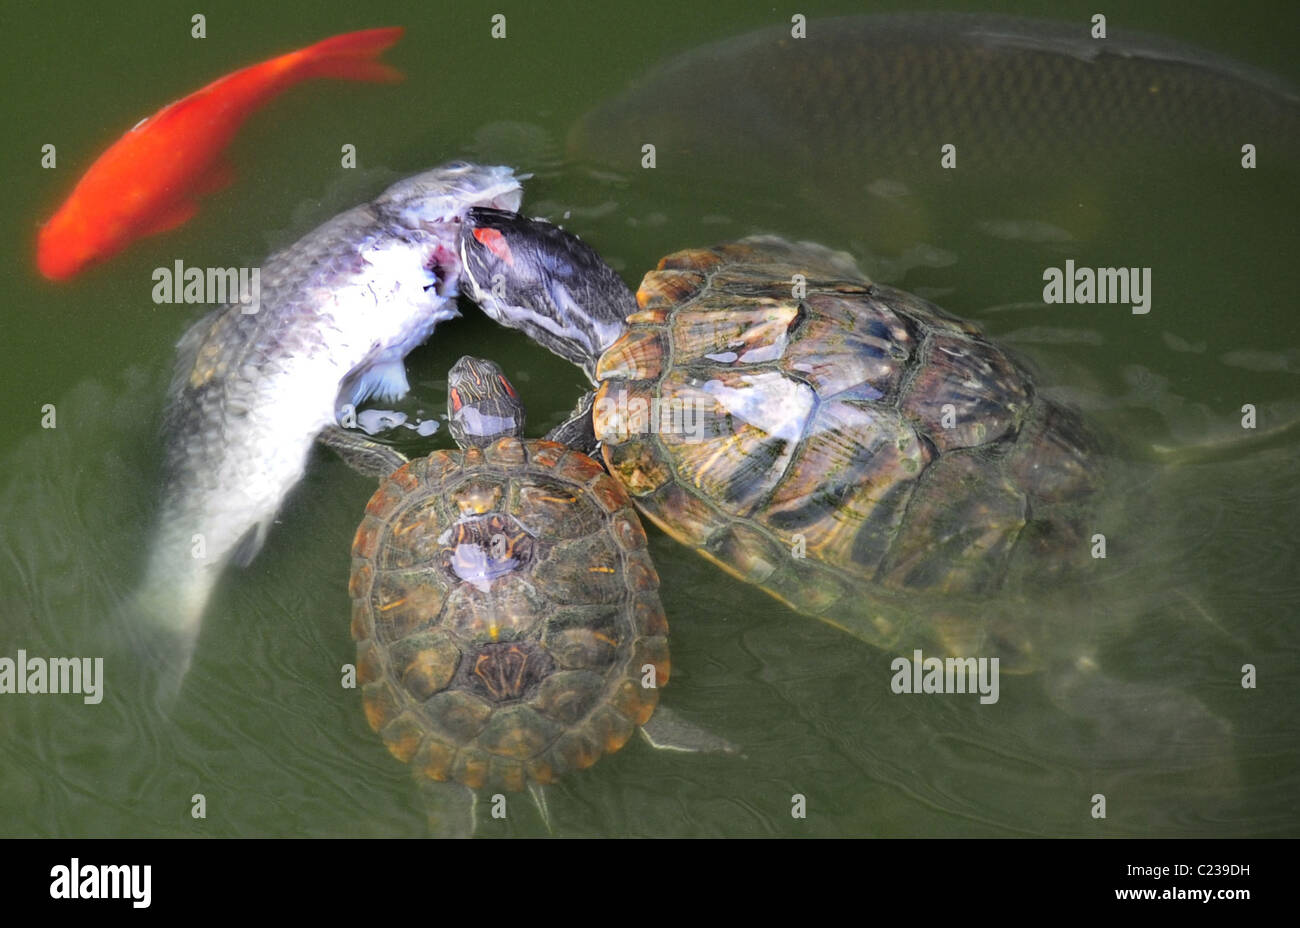 Turtles turn predator A group of turtles feed on a dead fish